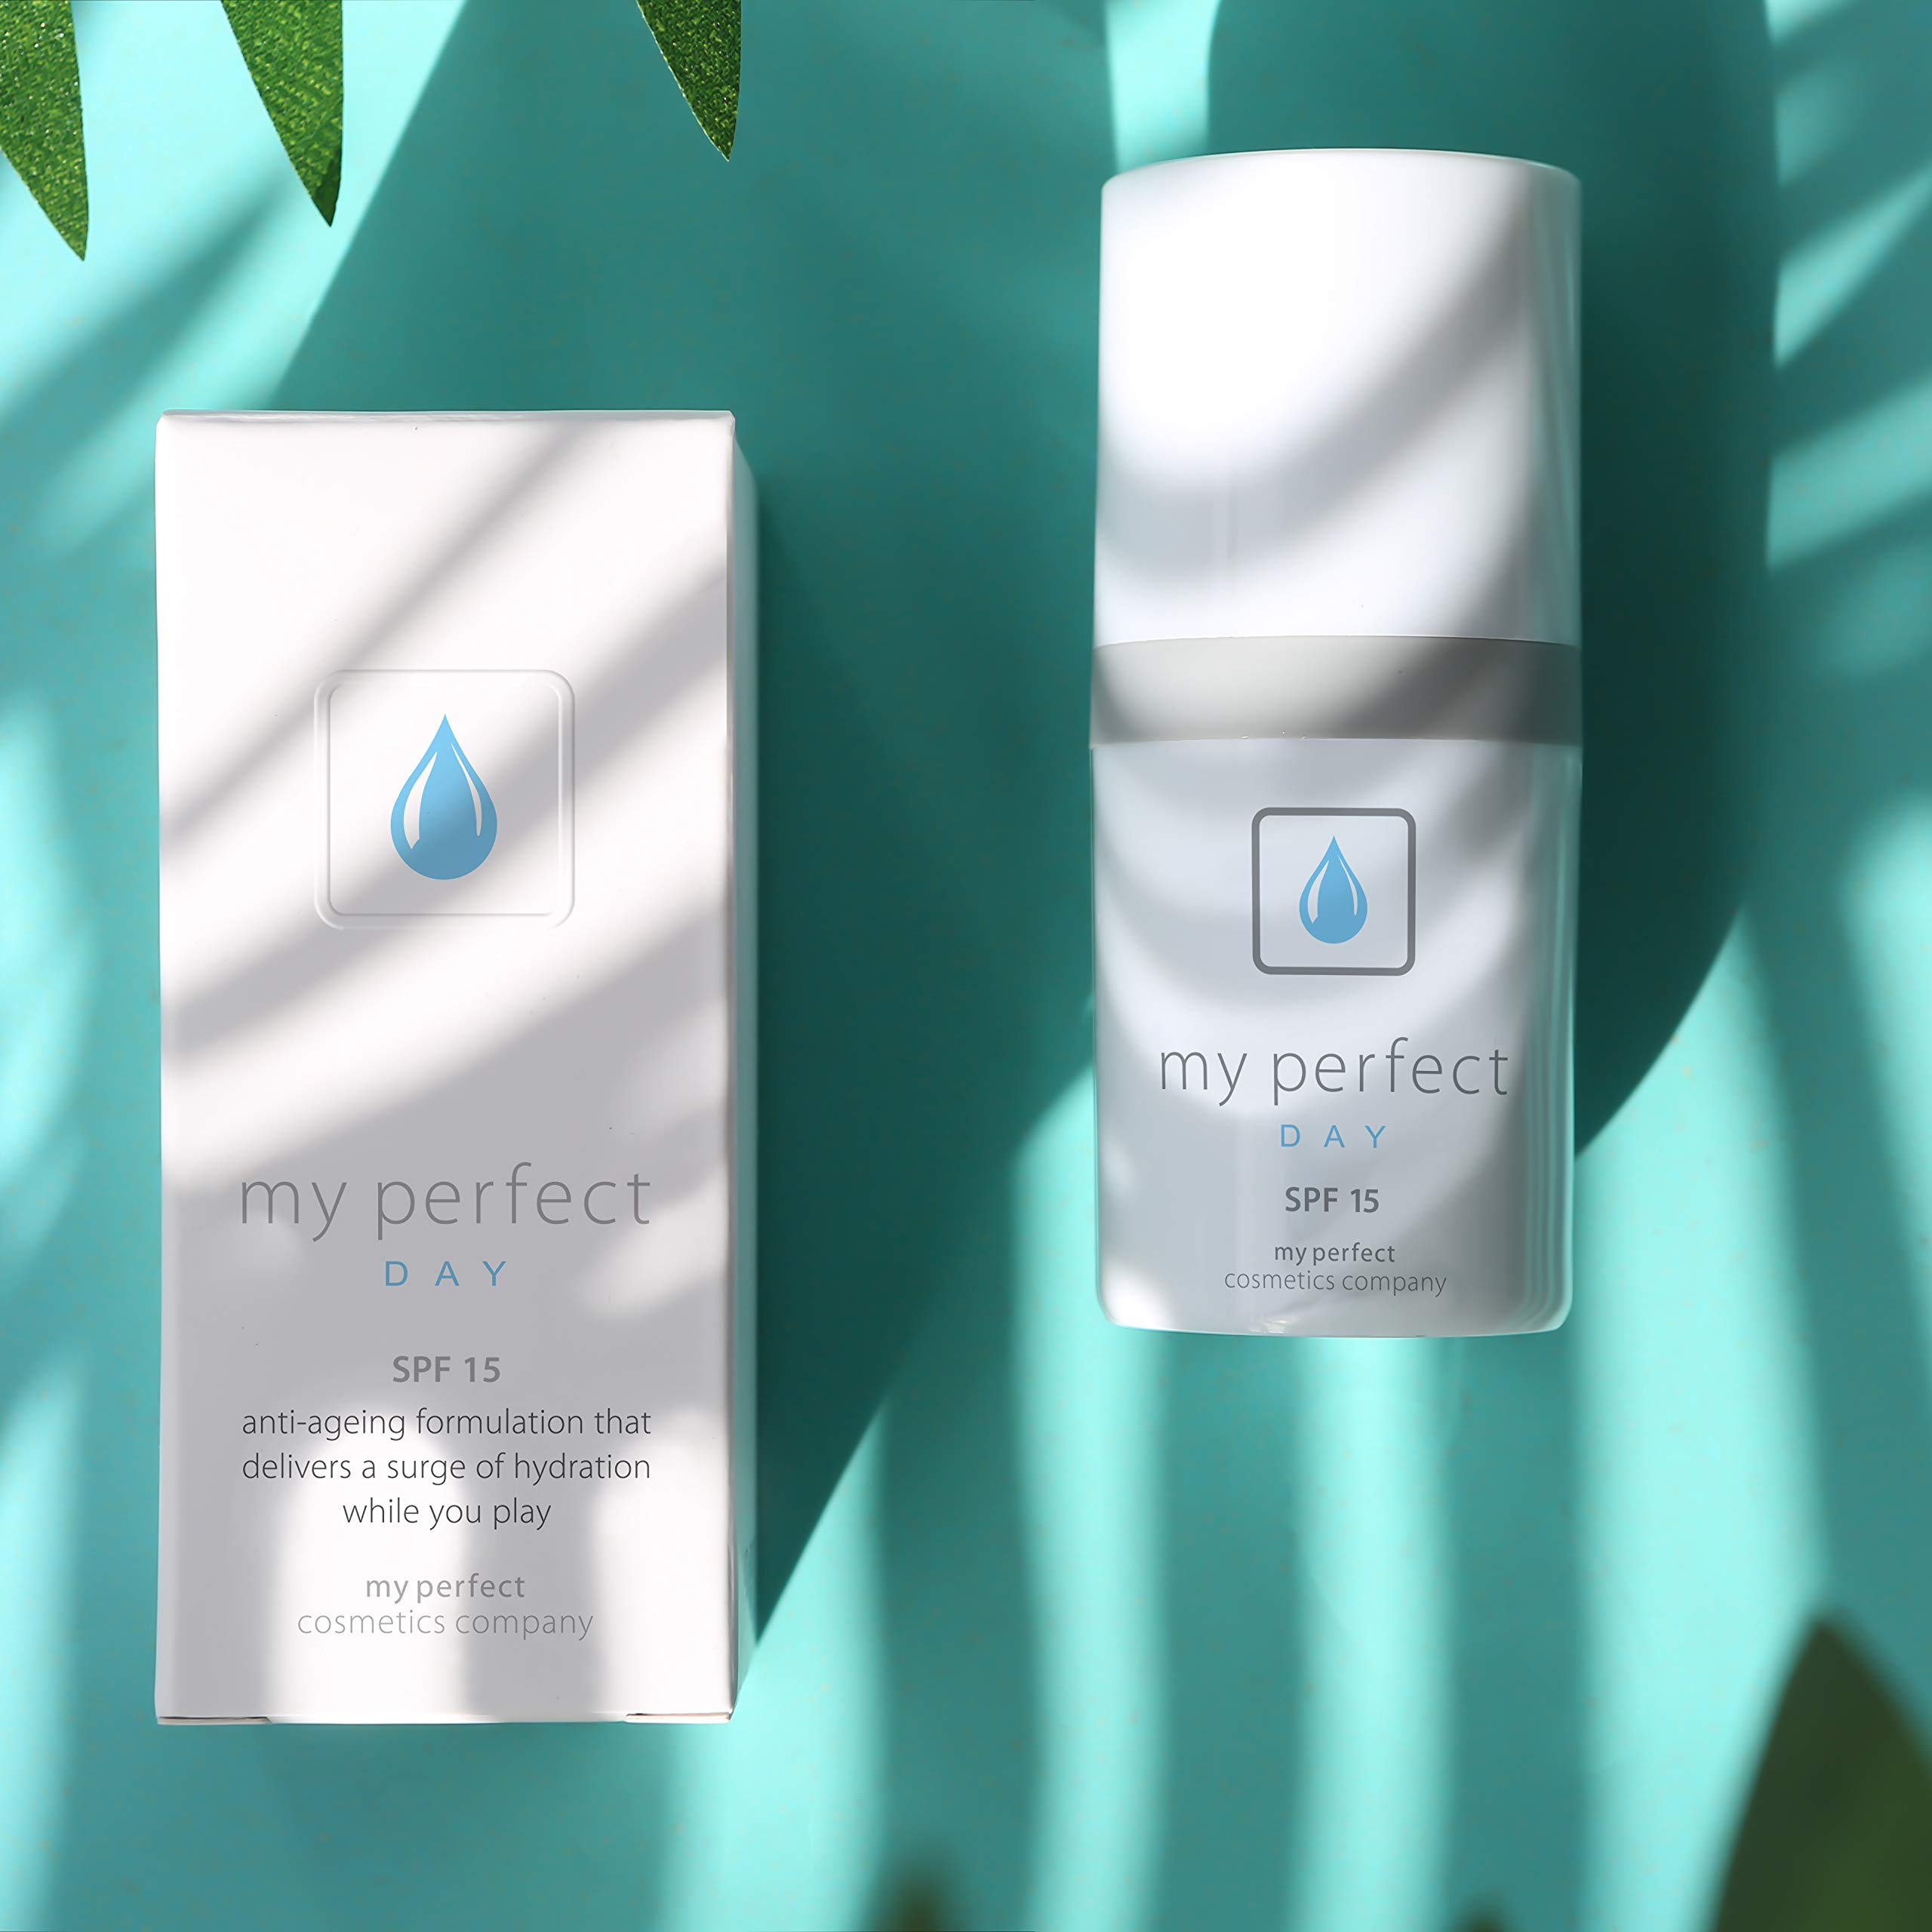 My Perfect Eyes Anti-Ageing Under Eye Enhancer 200 Applications with My Perfect Day SPF 15